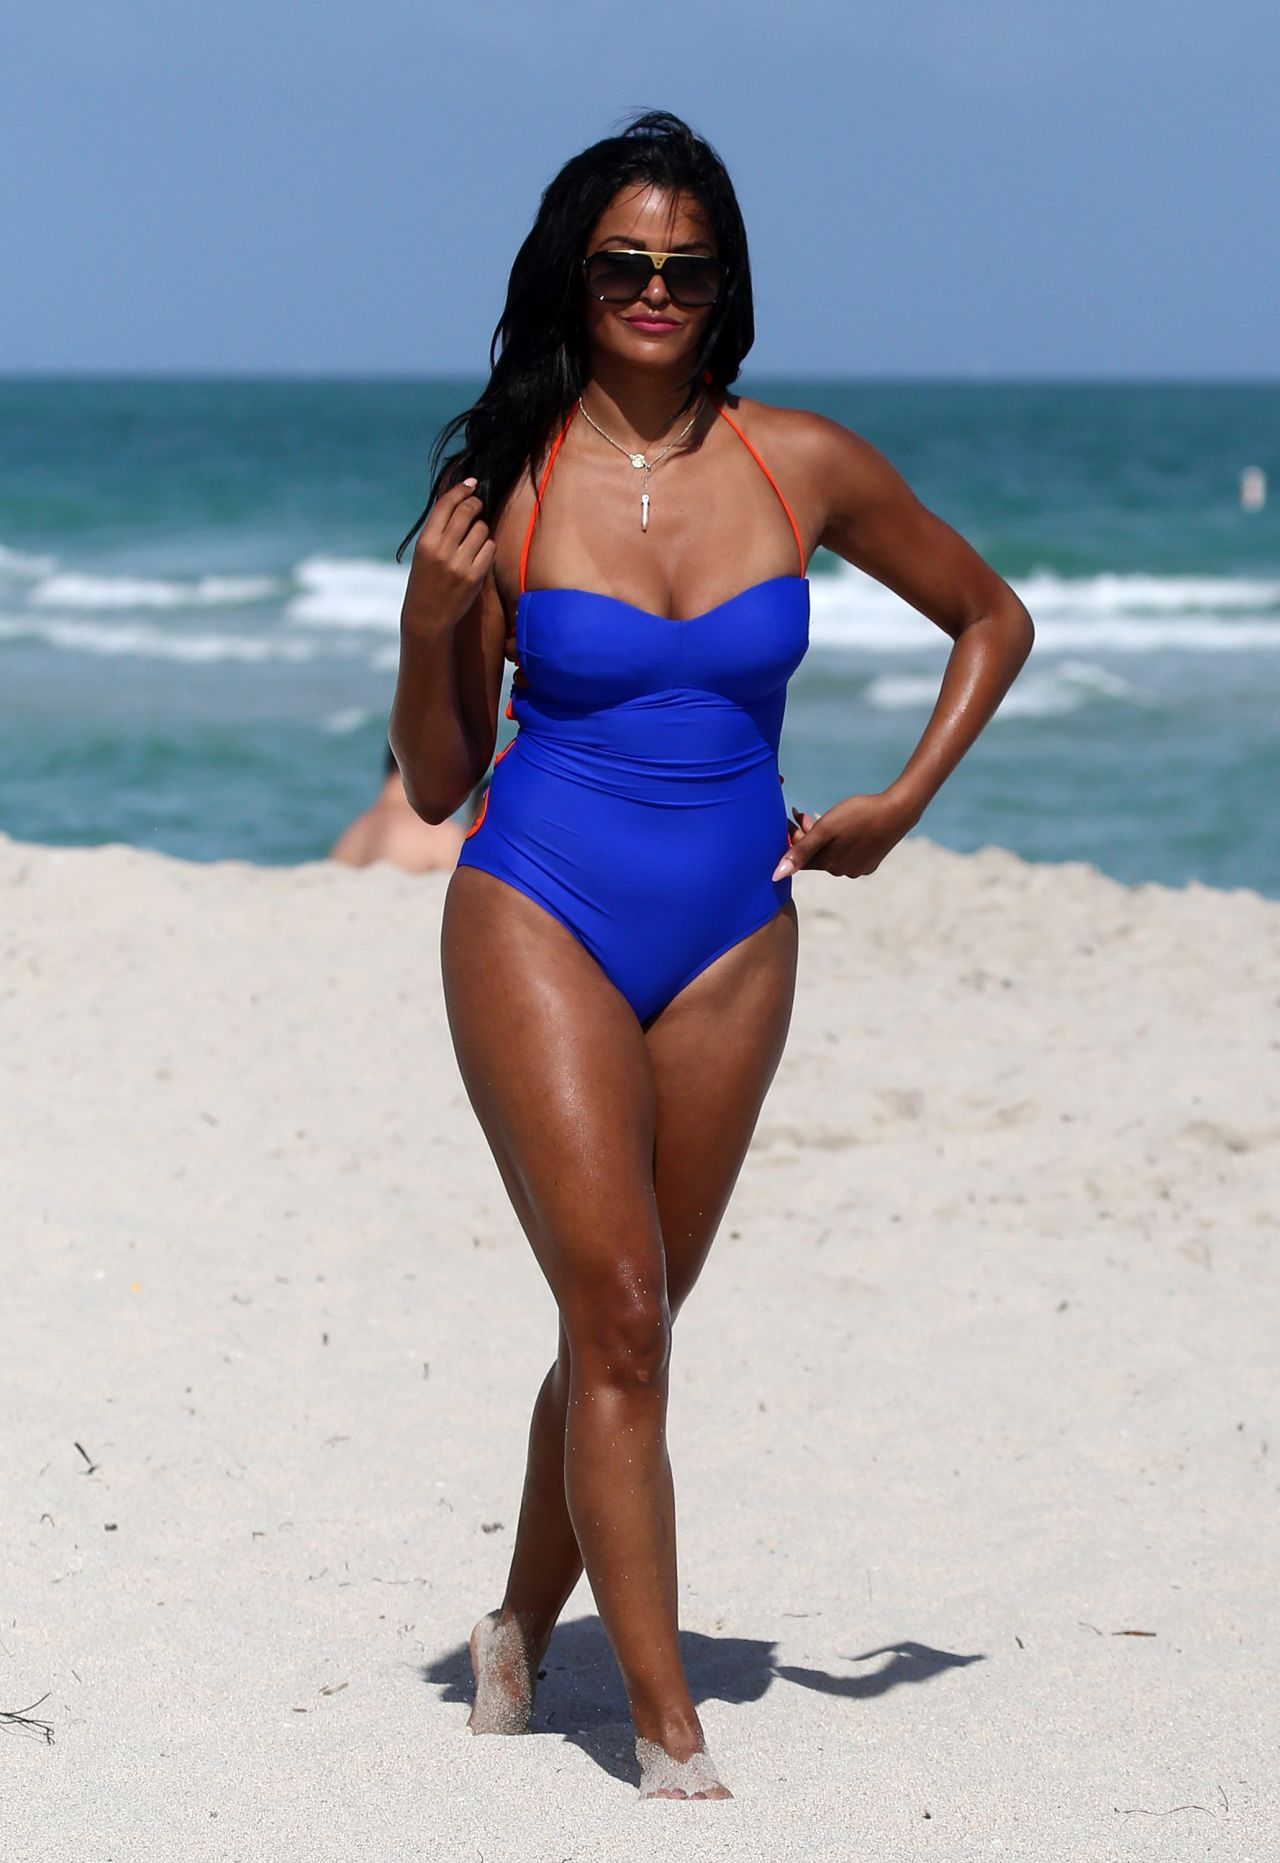 Claudia Jordan in a Blue Swimsuit on the Beach in Miami